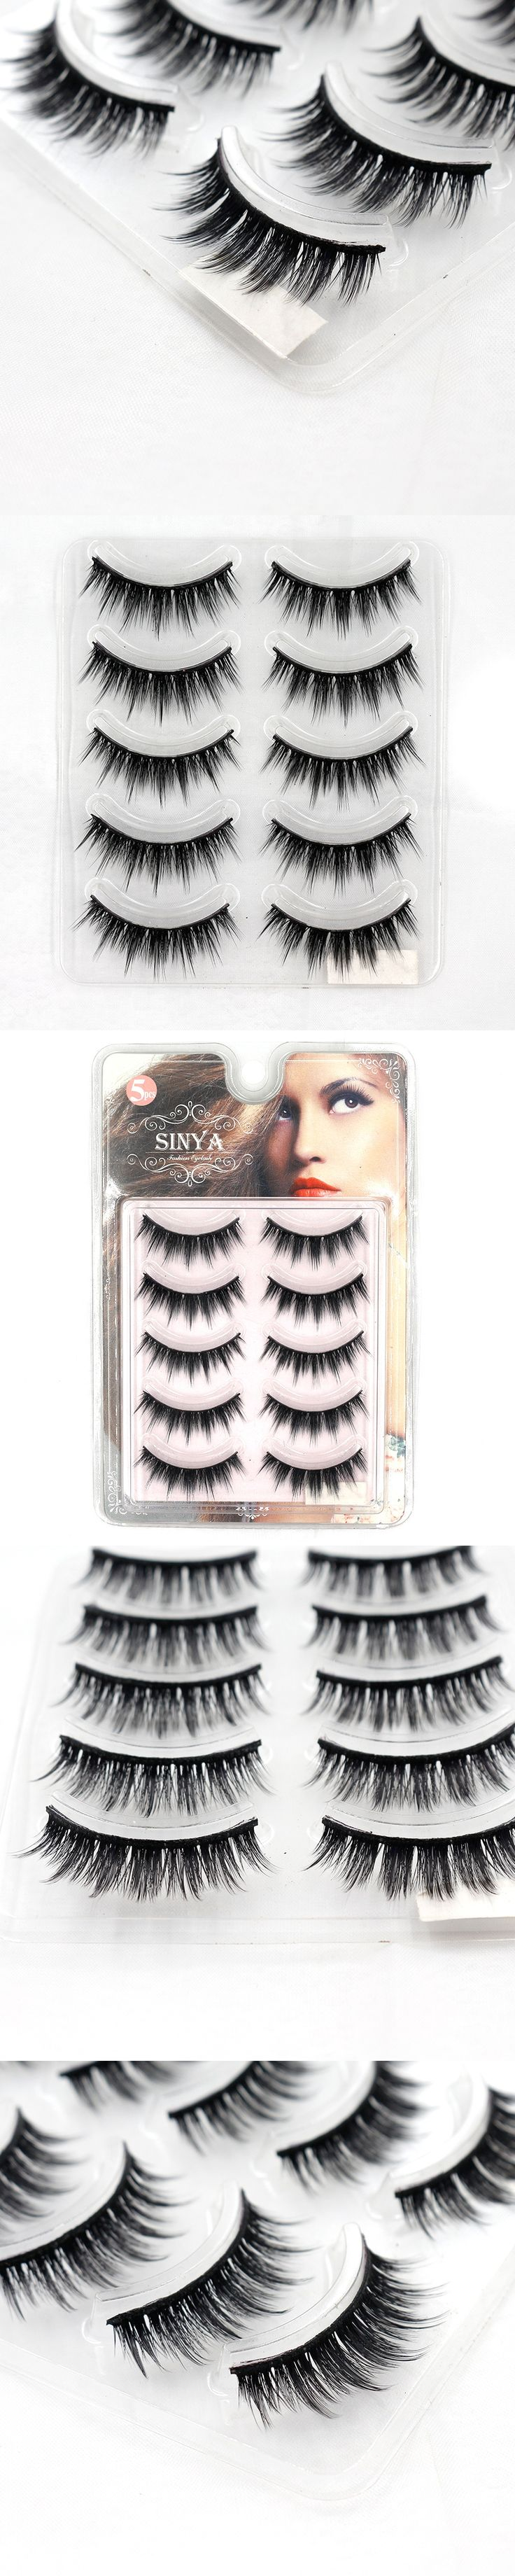 5 Pairs Tapered Thick Imitate Mink Eyelashes Extension False Eye Lashes Cilios Posticos Naturais Faux Cils Nep Wimpers G635-S5